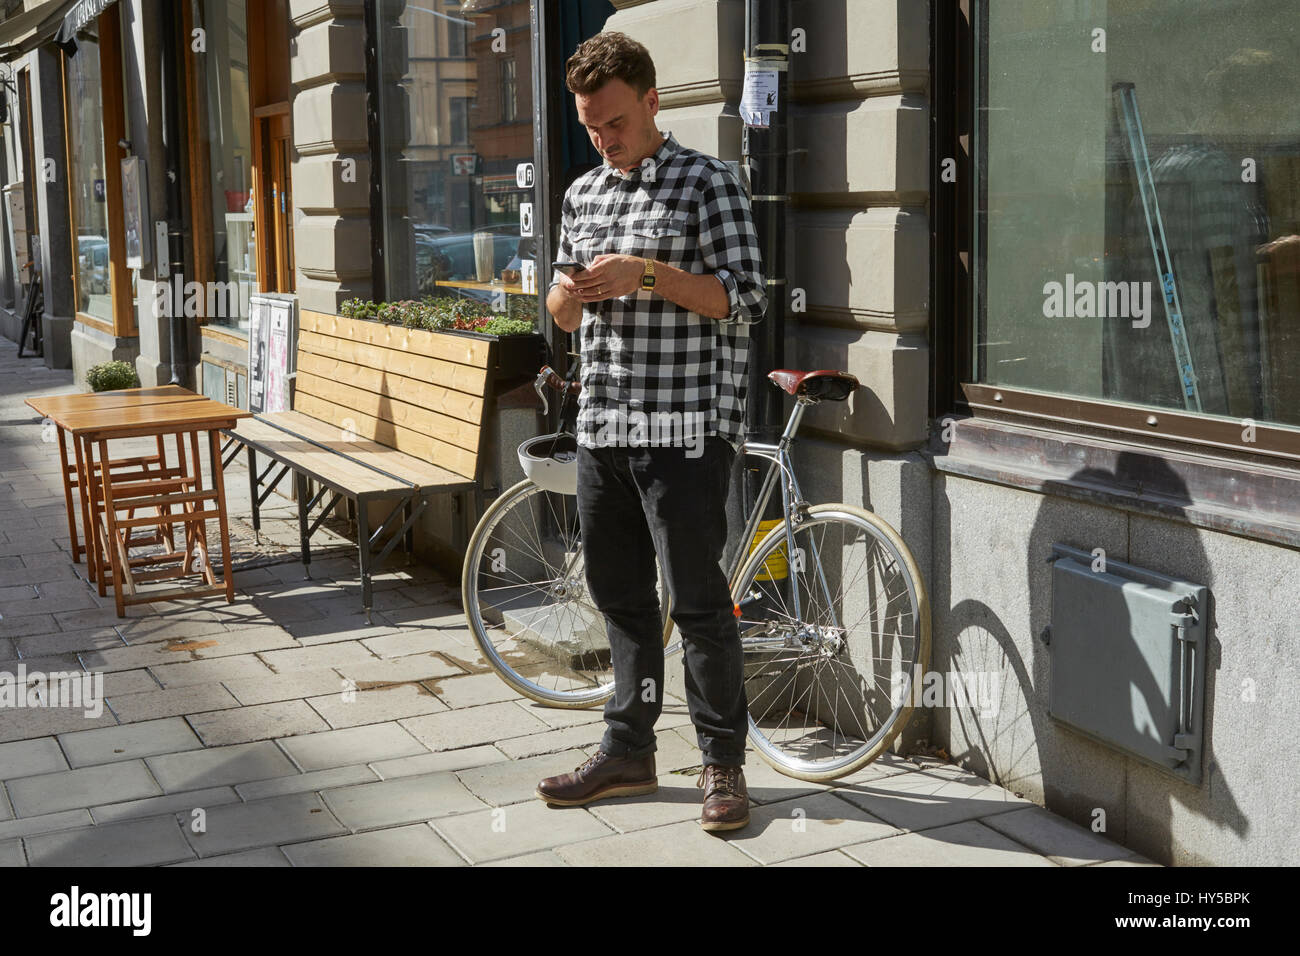 Sweden, Stockholm, Man texting on sidewalk - Stock Image